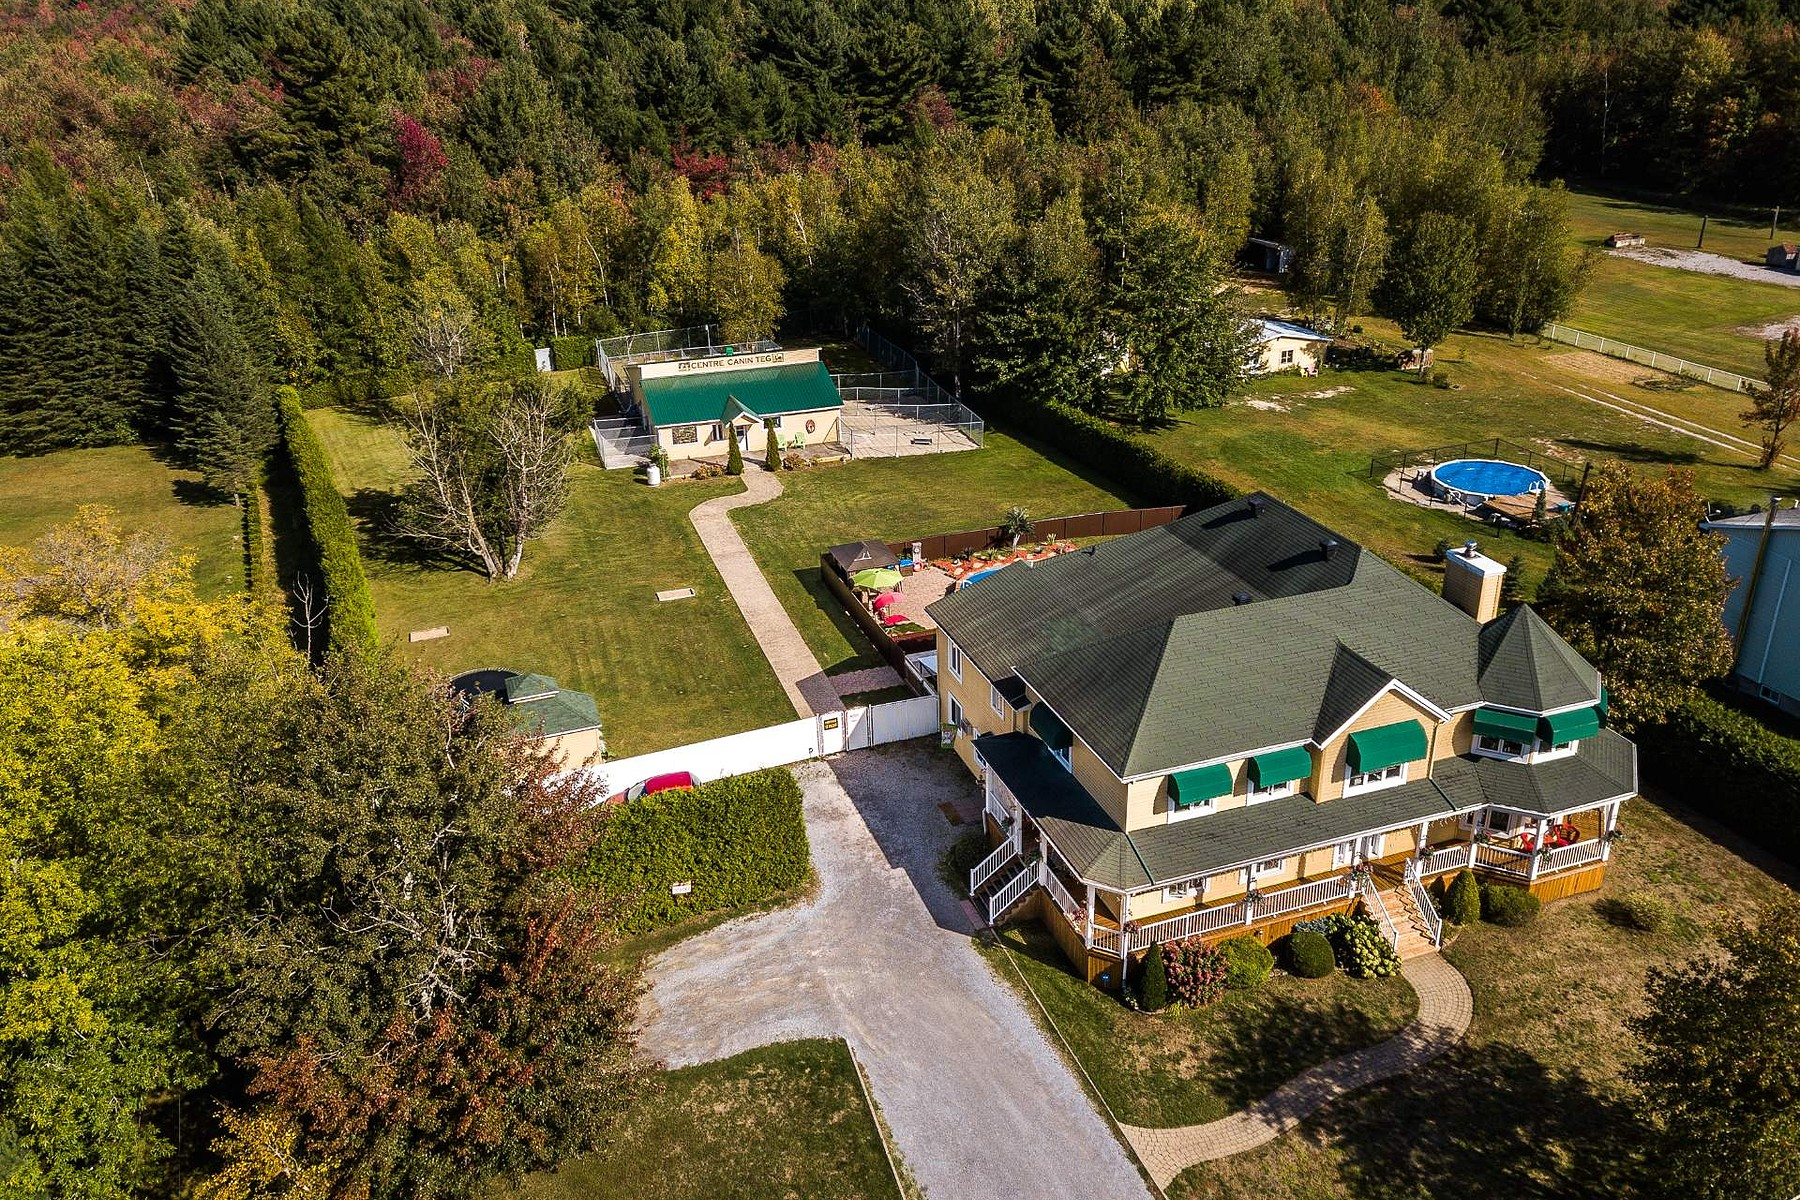 Multi-Family Homes for Sale at Acton Vale, Montérégie 268 Route 139 Acton Vale, Quebec J0H1A0 Canada